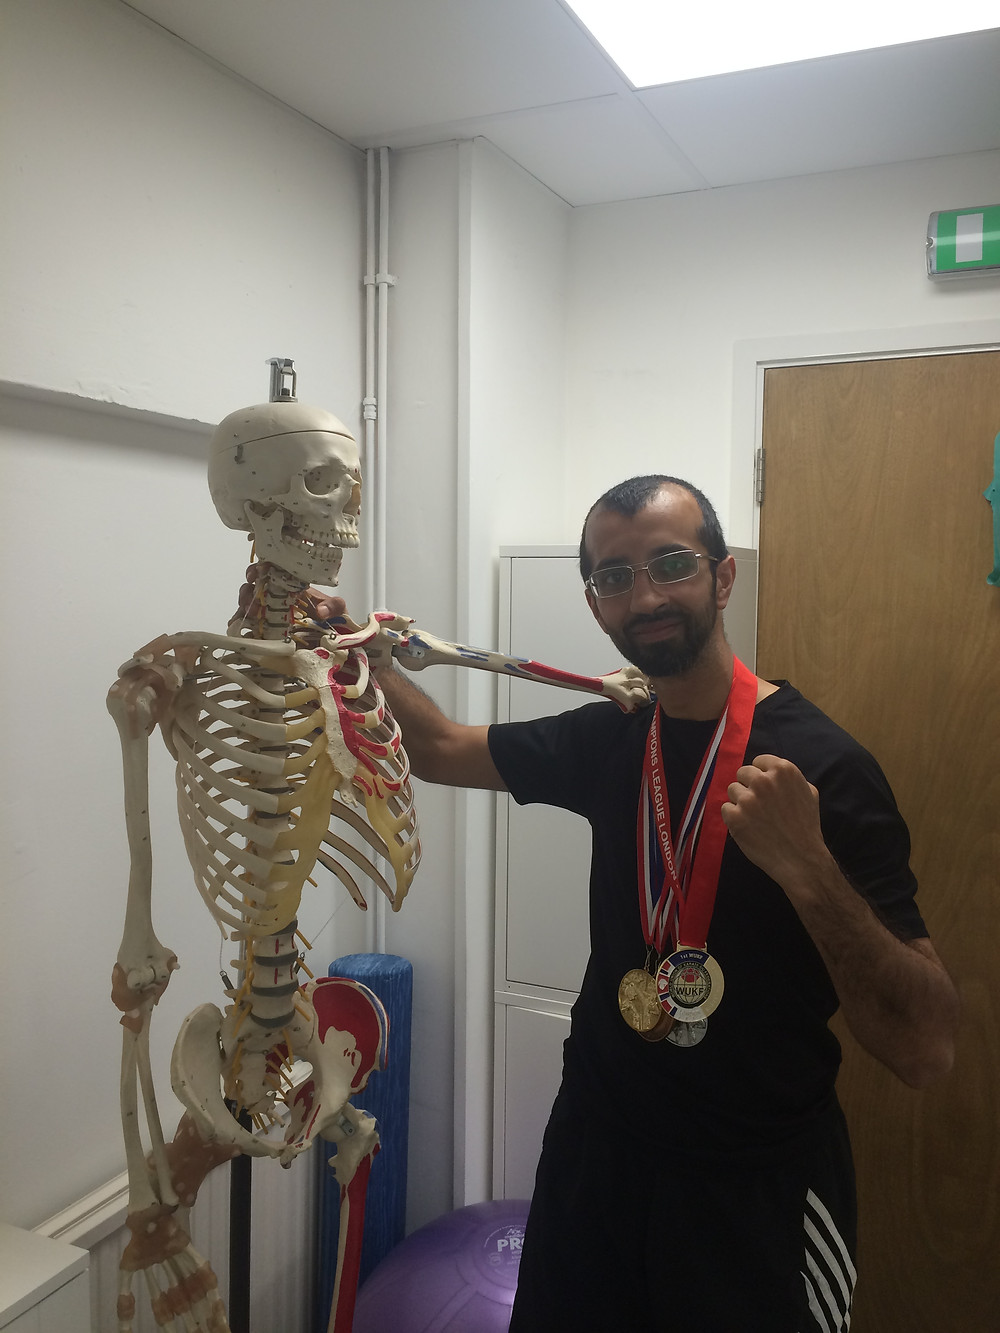 Karateka Meenhaz Janar with all his recent medals